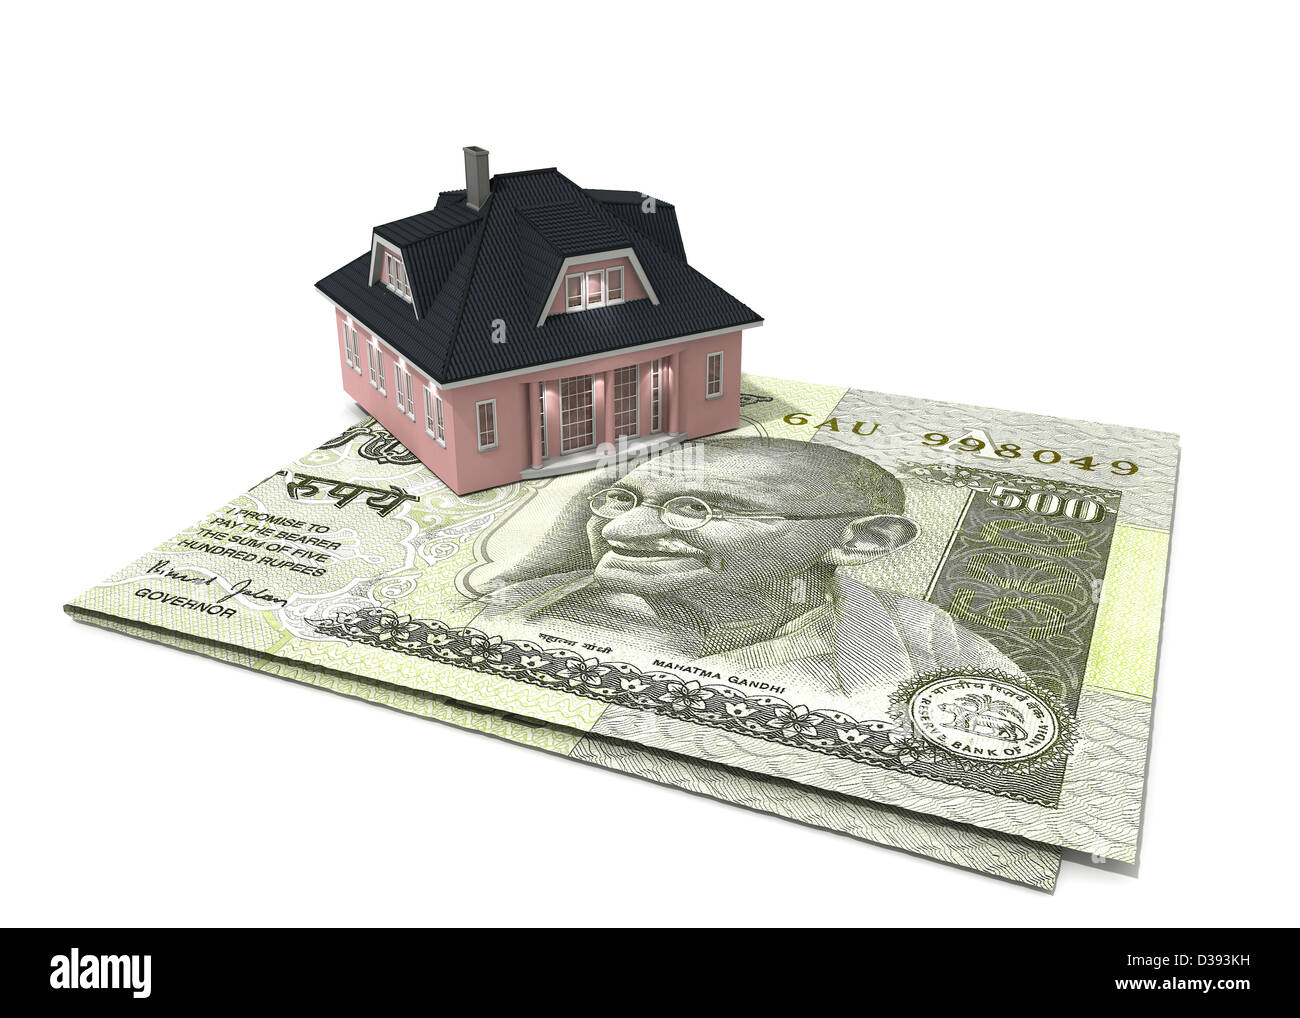 Model home on Indian five hundred rupee note - Stock Image